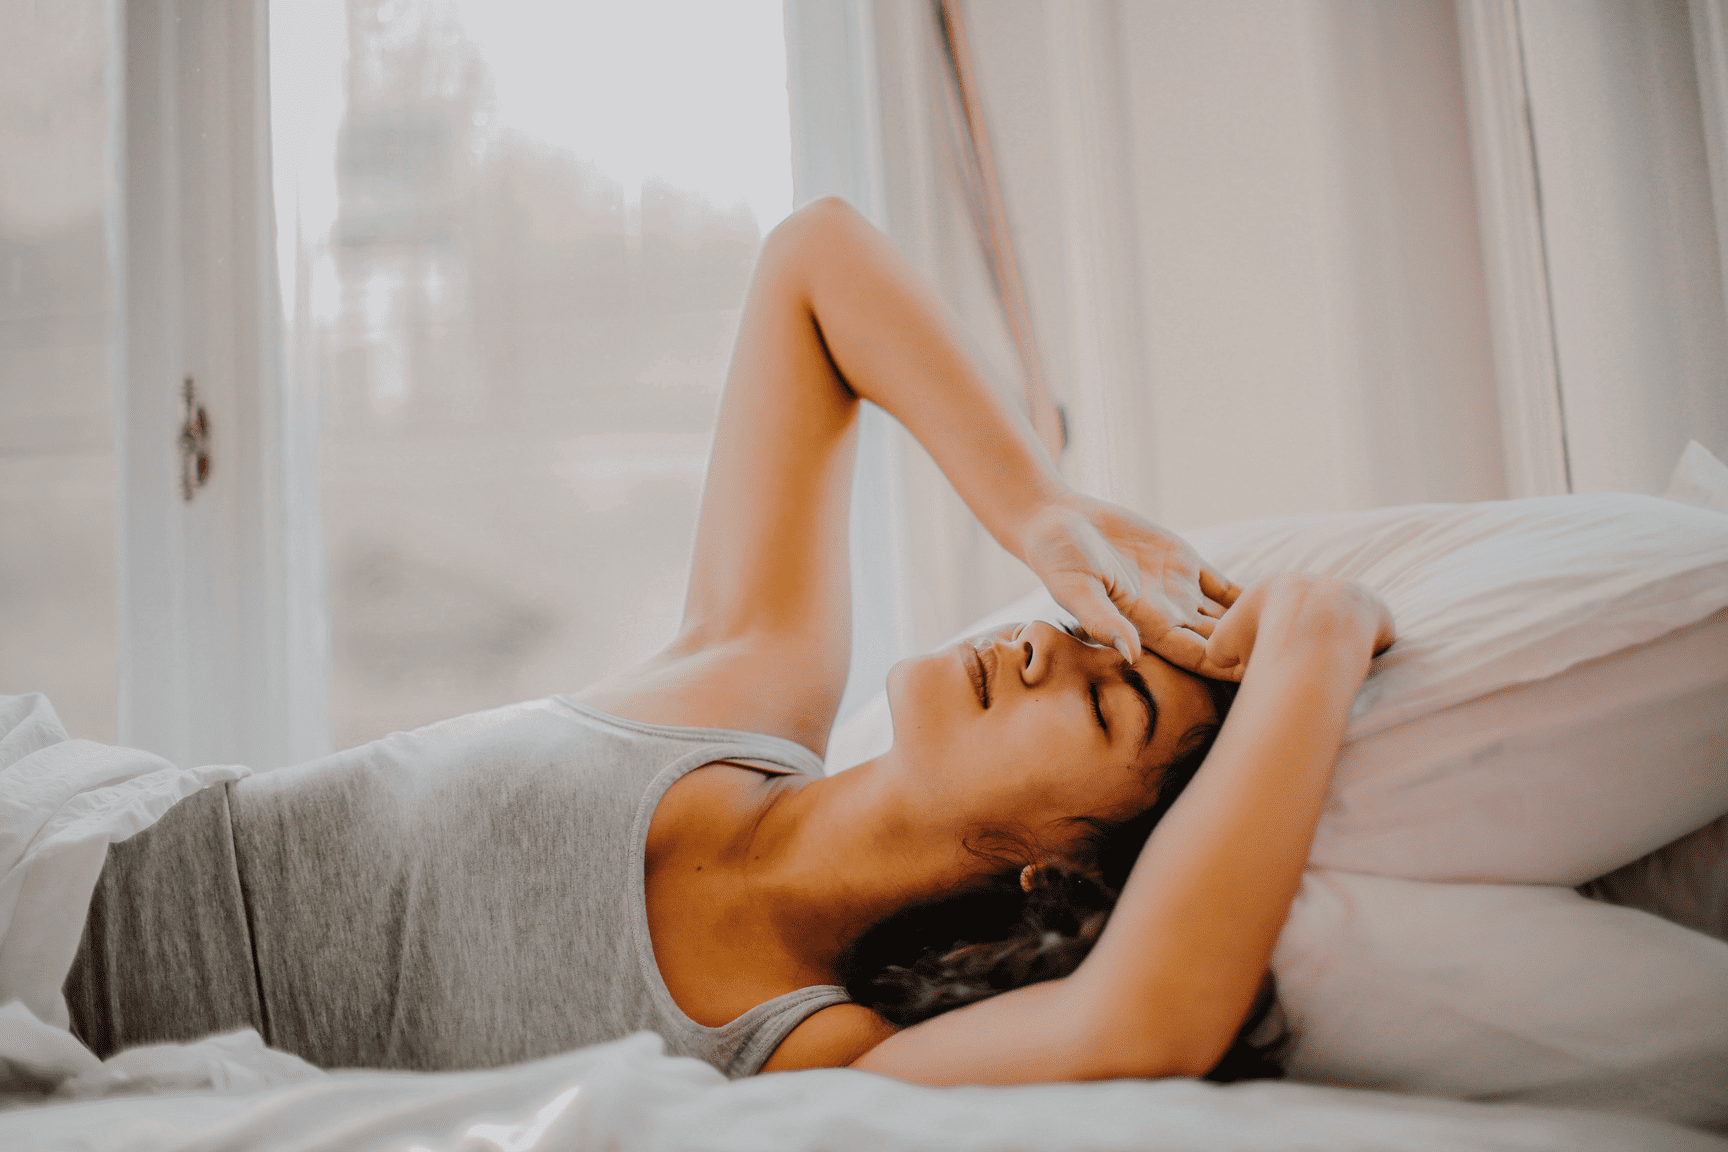 migraine treatments needed for woman in bed